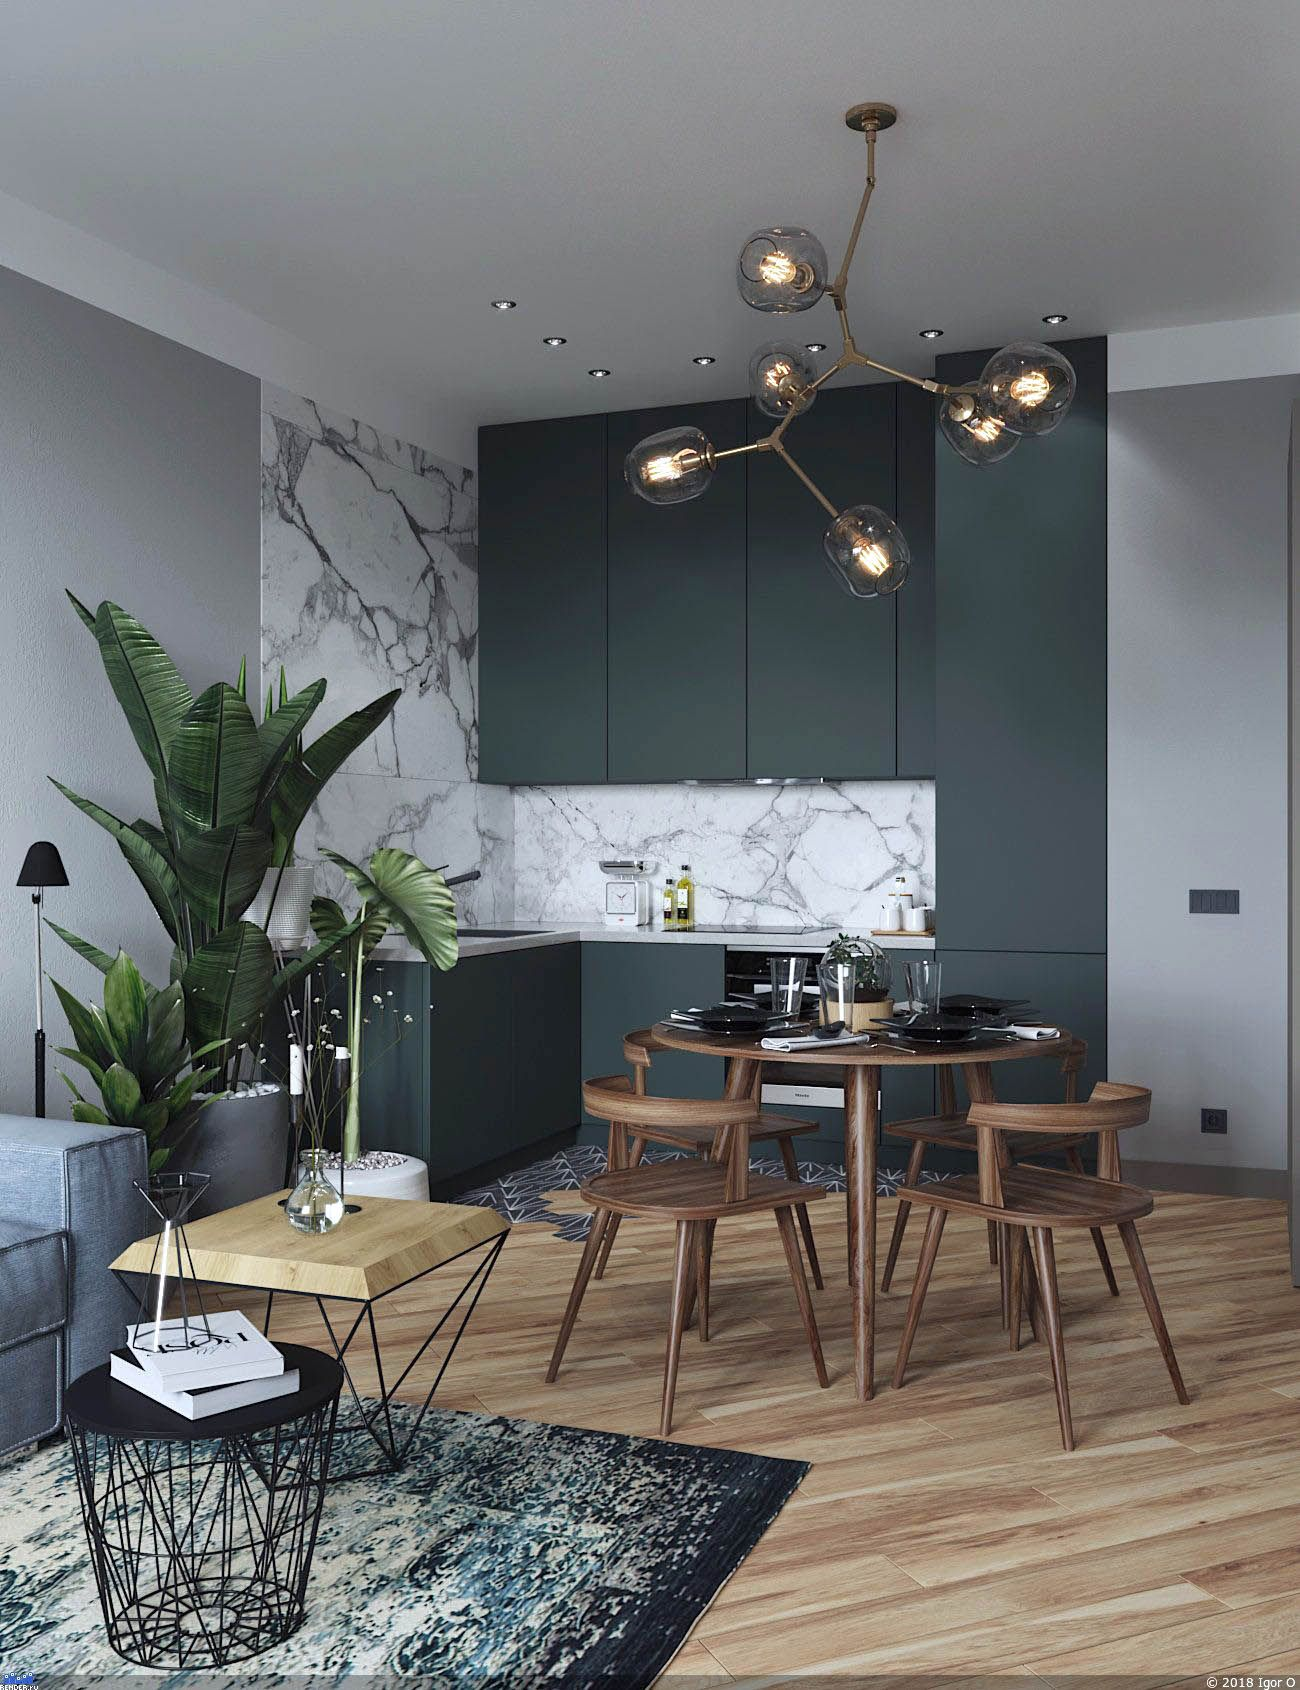 First Rate Sage Green Kitchen Cabinets With Black Appliances Exclusive On Smart Home Decor Apartment Interior Design Apartment Interior Affordable Dining Room